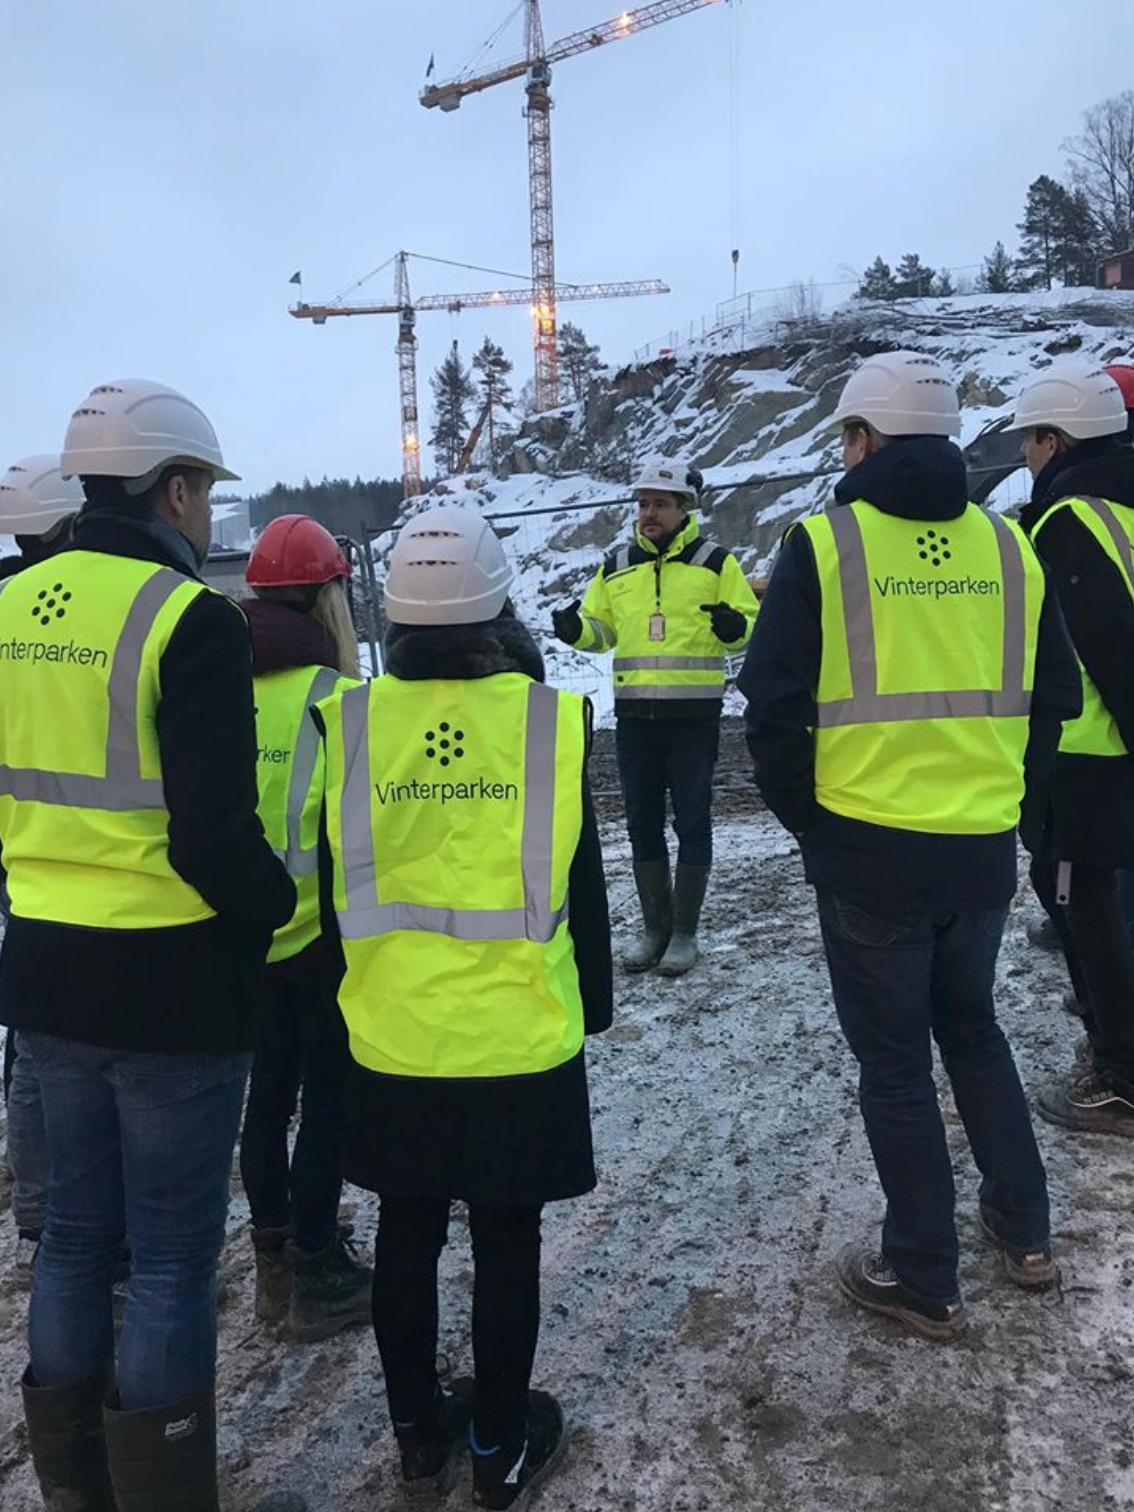 A team of people standing ouside looking at a building site